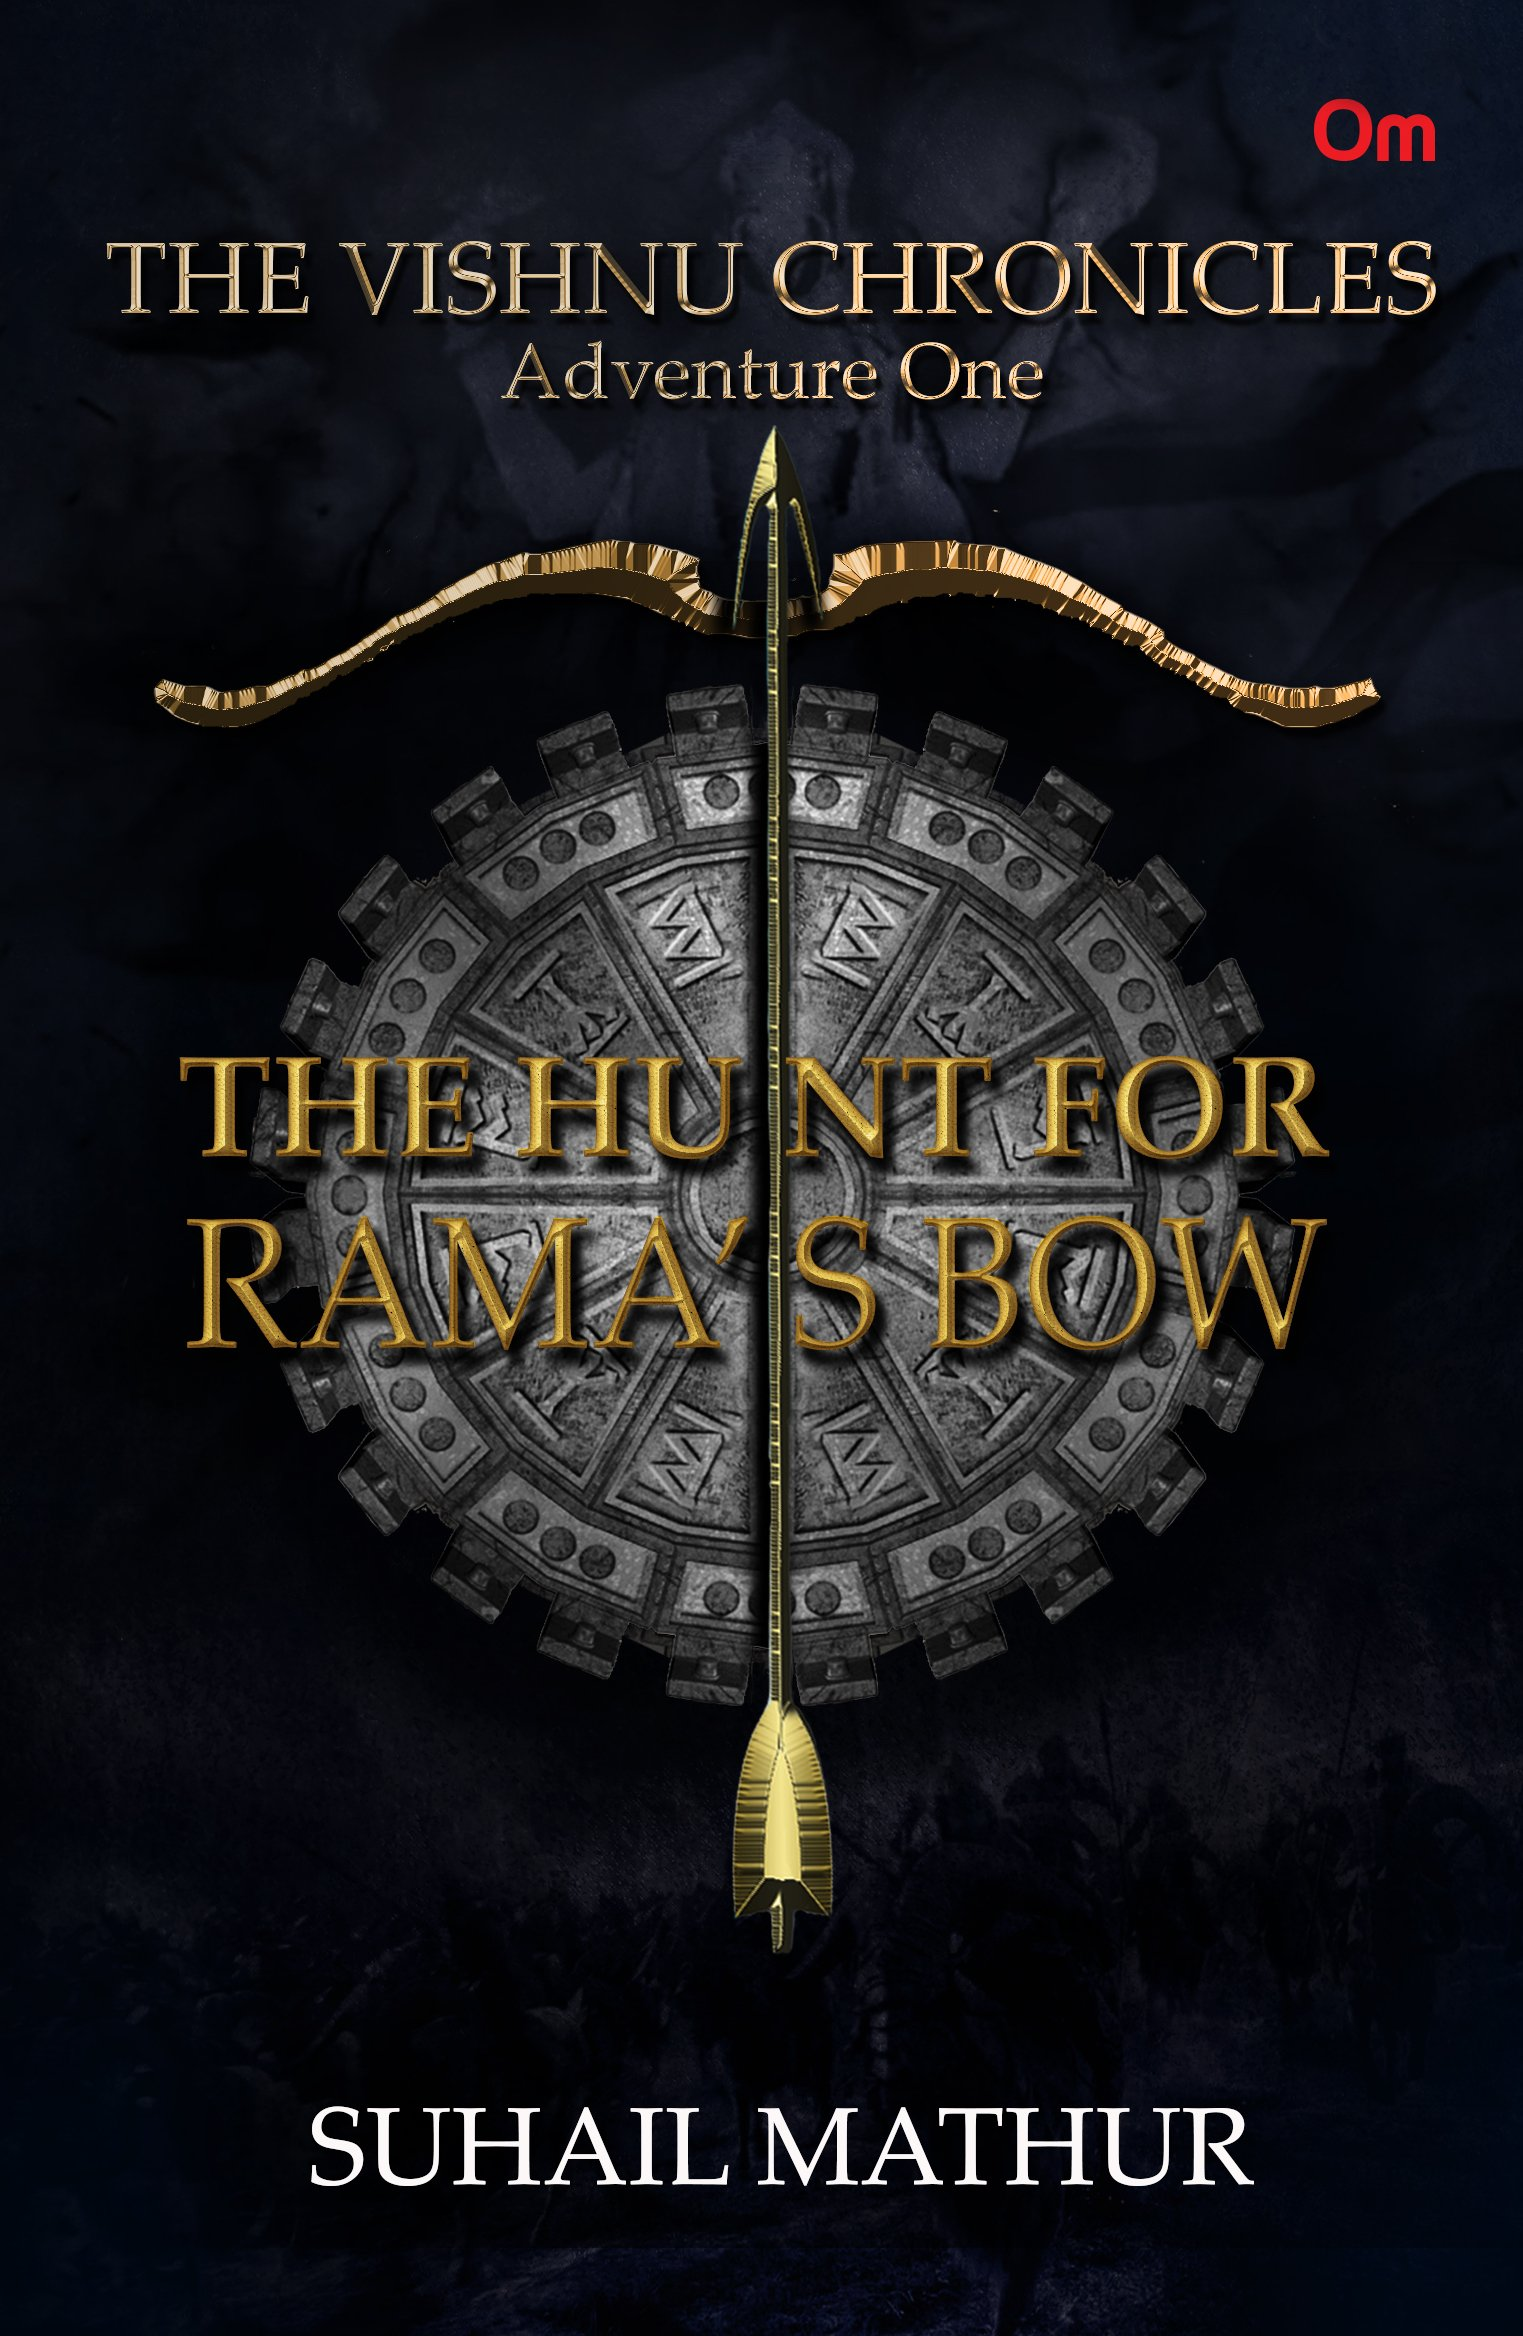 Buy The Vishnu Chronicles: The Hunt for Rama's Bow (Adventure One) Book  Online at Low Prices in India | The Vishnu Chronicles: The Hunt for Rama's  Bow ...